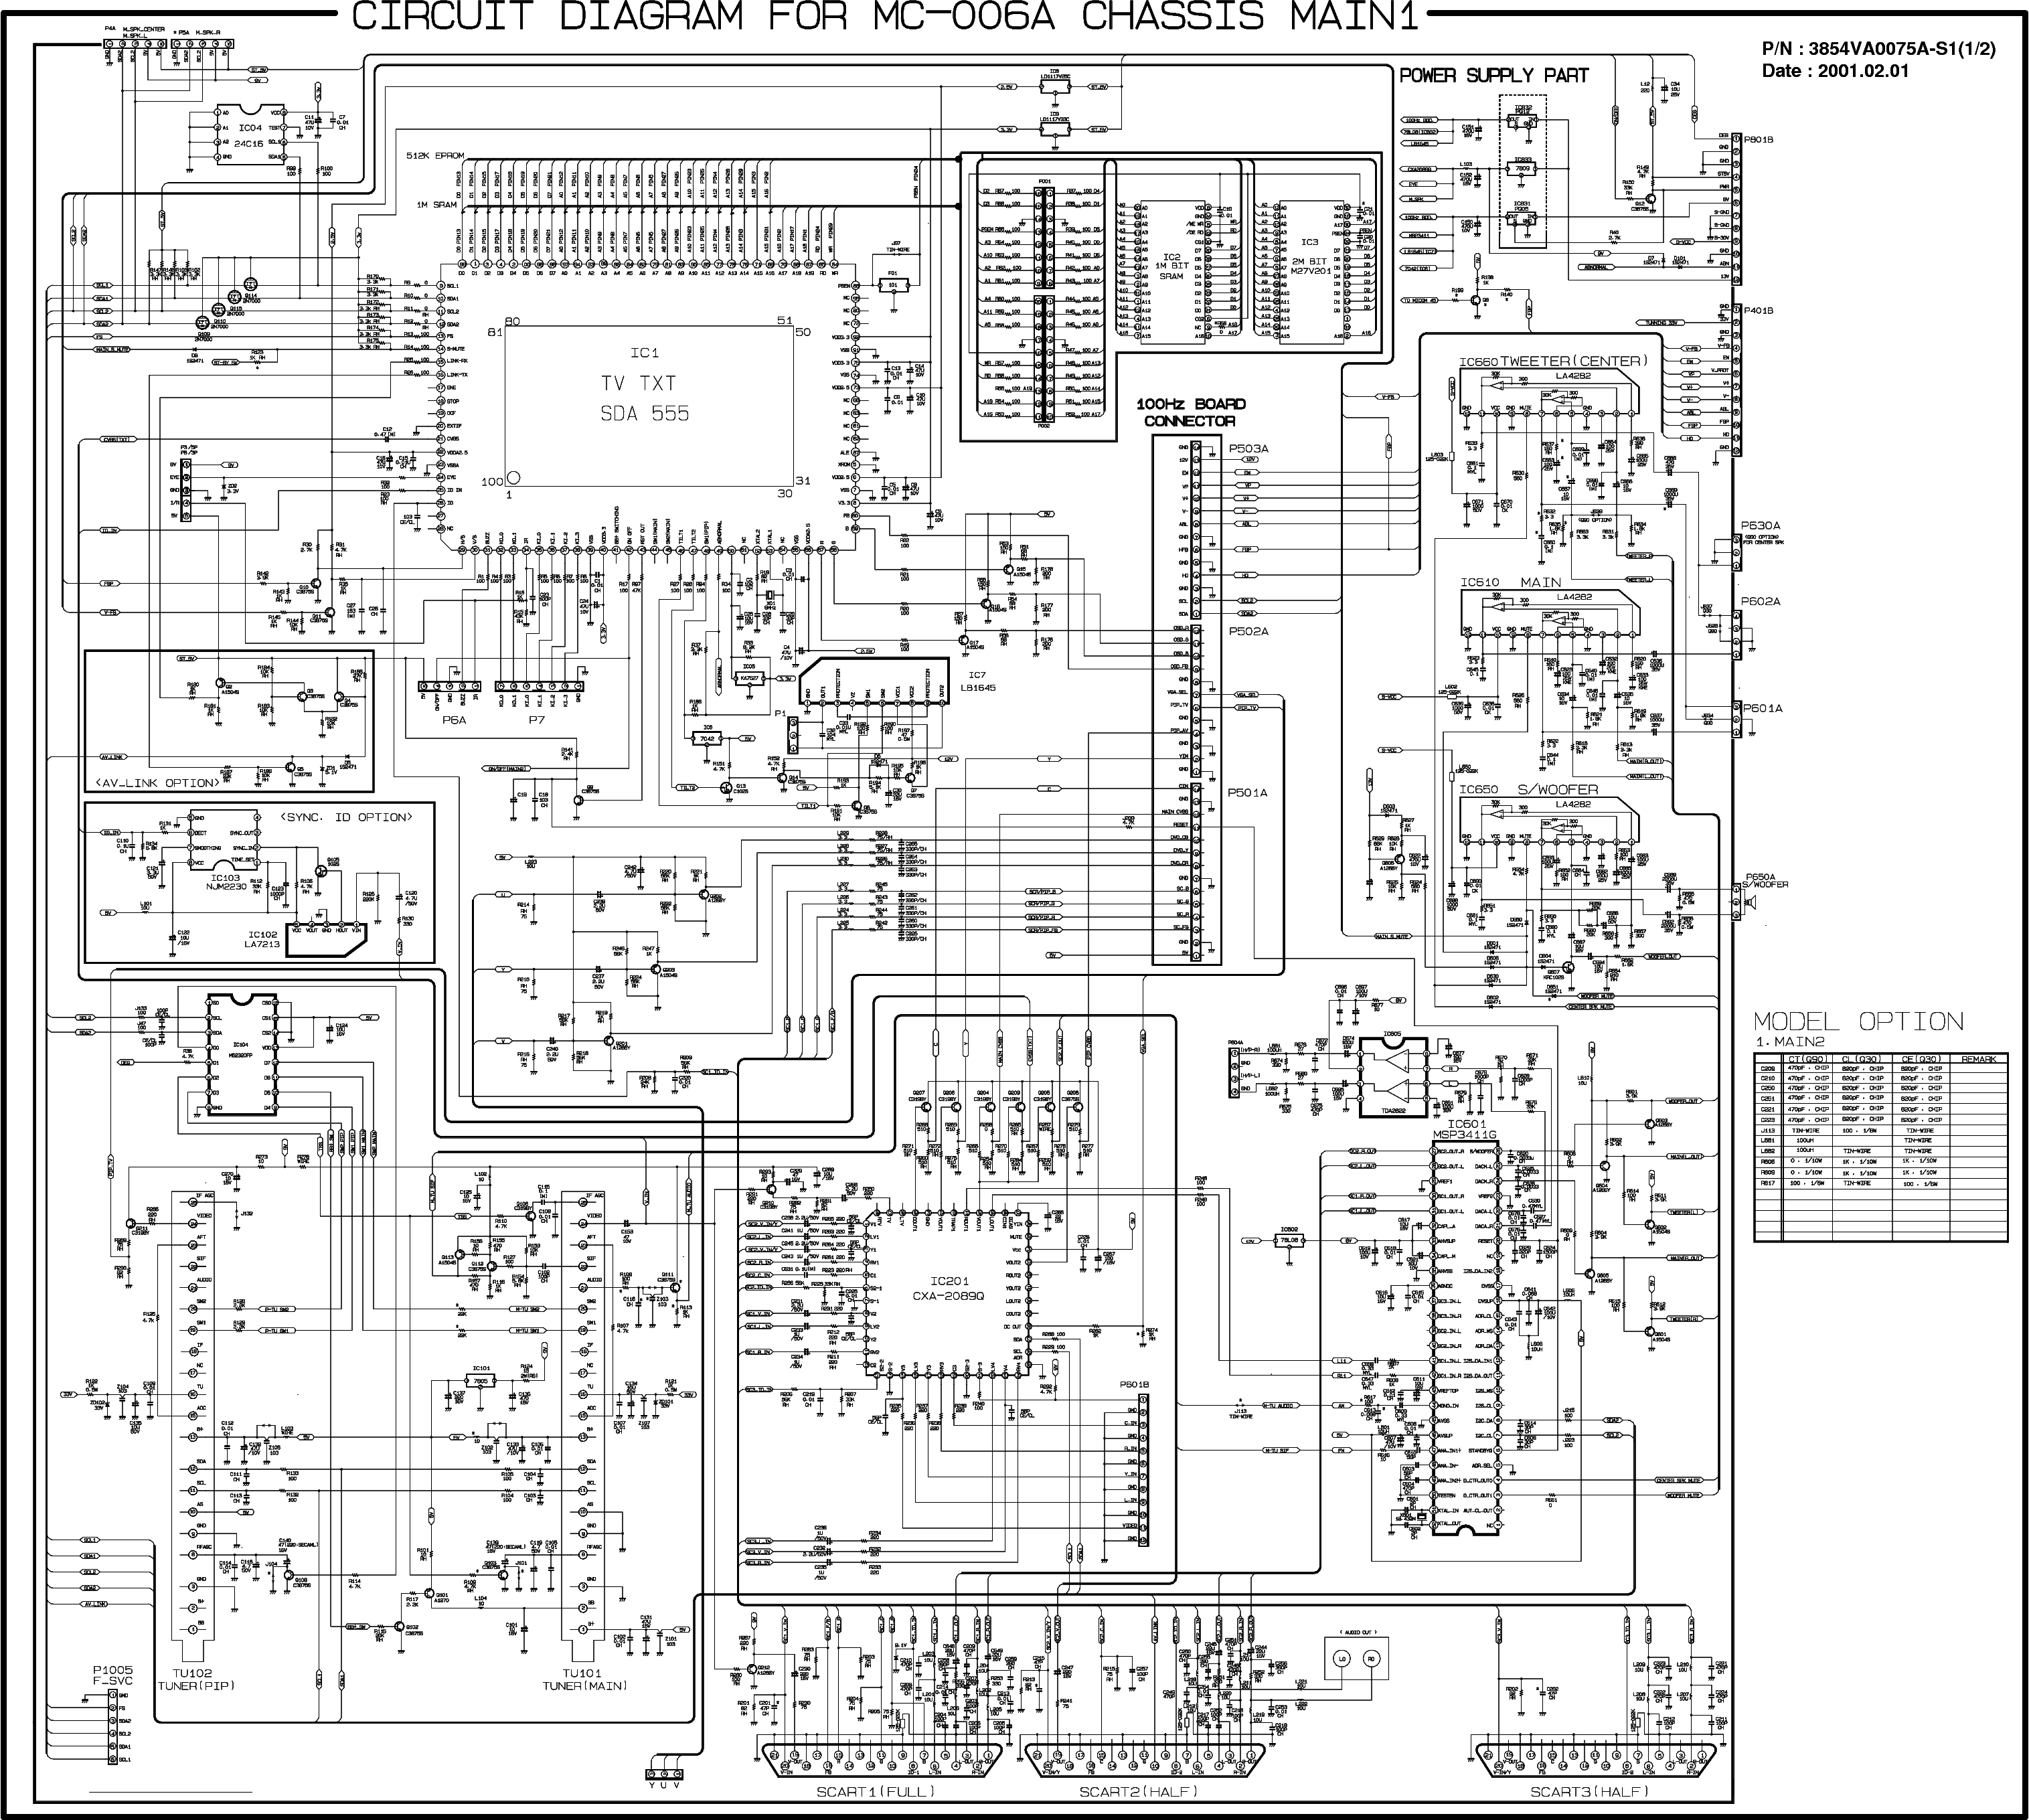 Lg Chassis Mc 006a Sch Service Manual Download Schematics